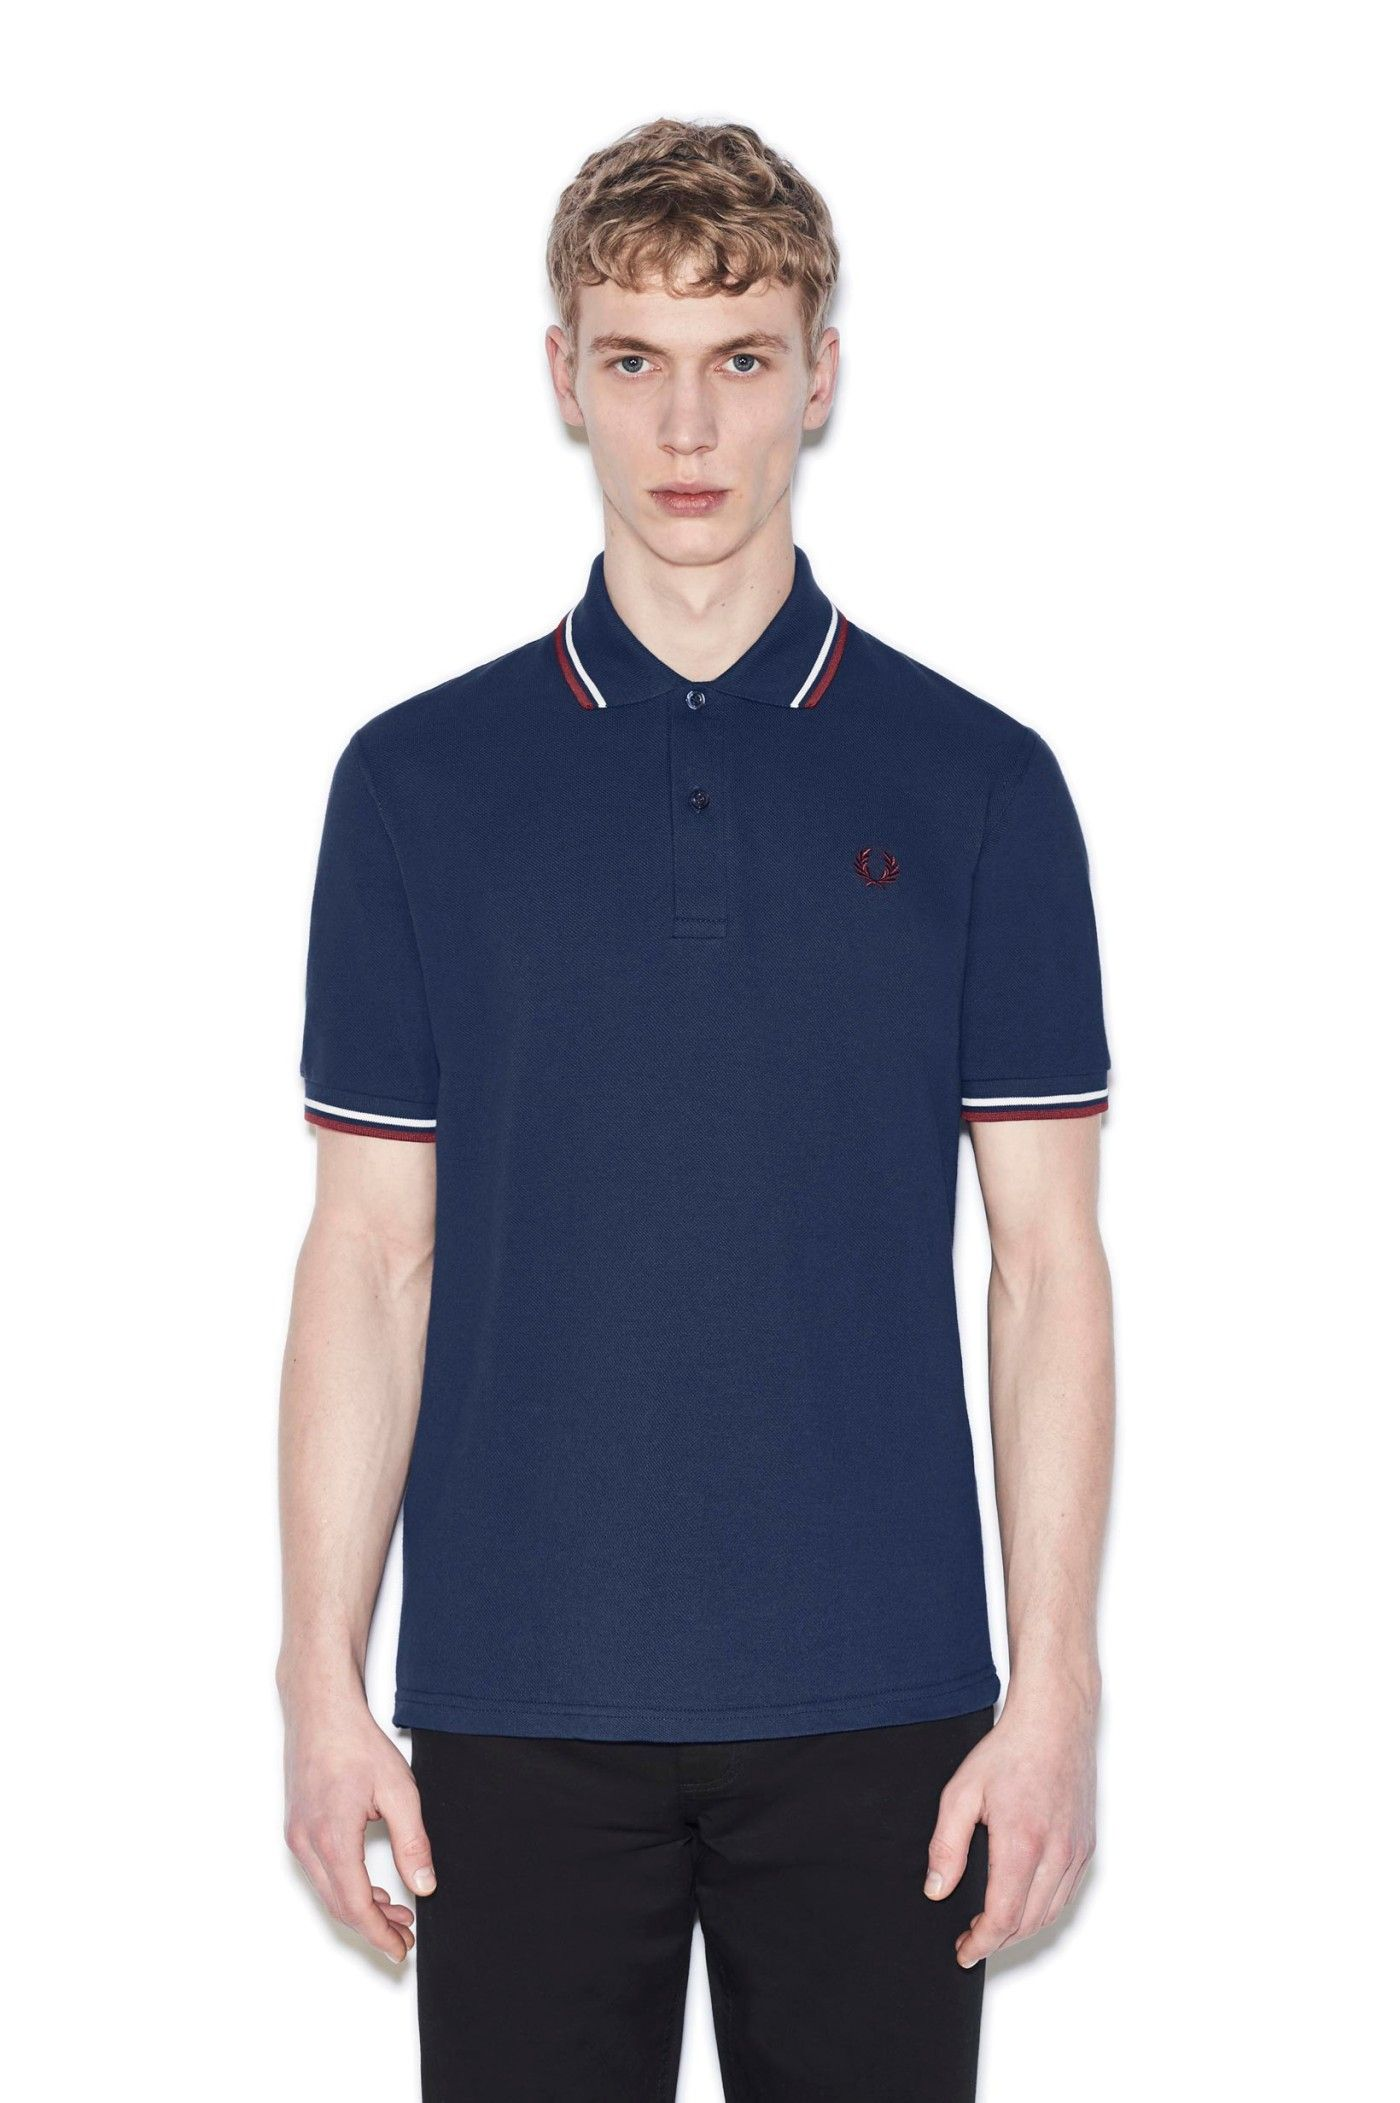 Fred Perry - M12 French Navy / Snow / Maroon